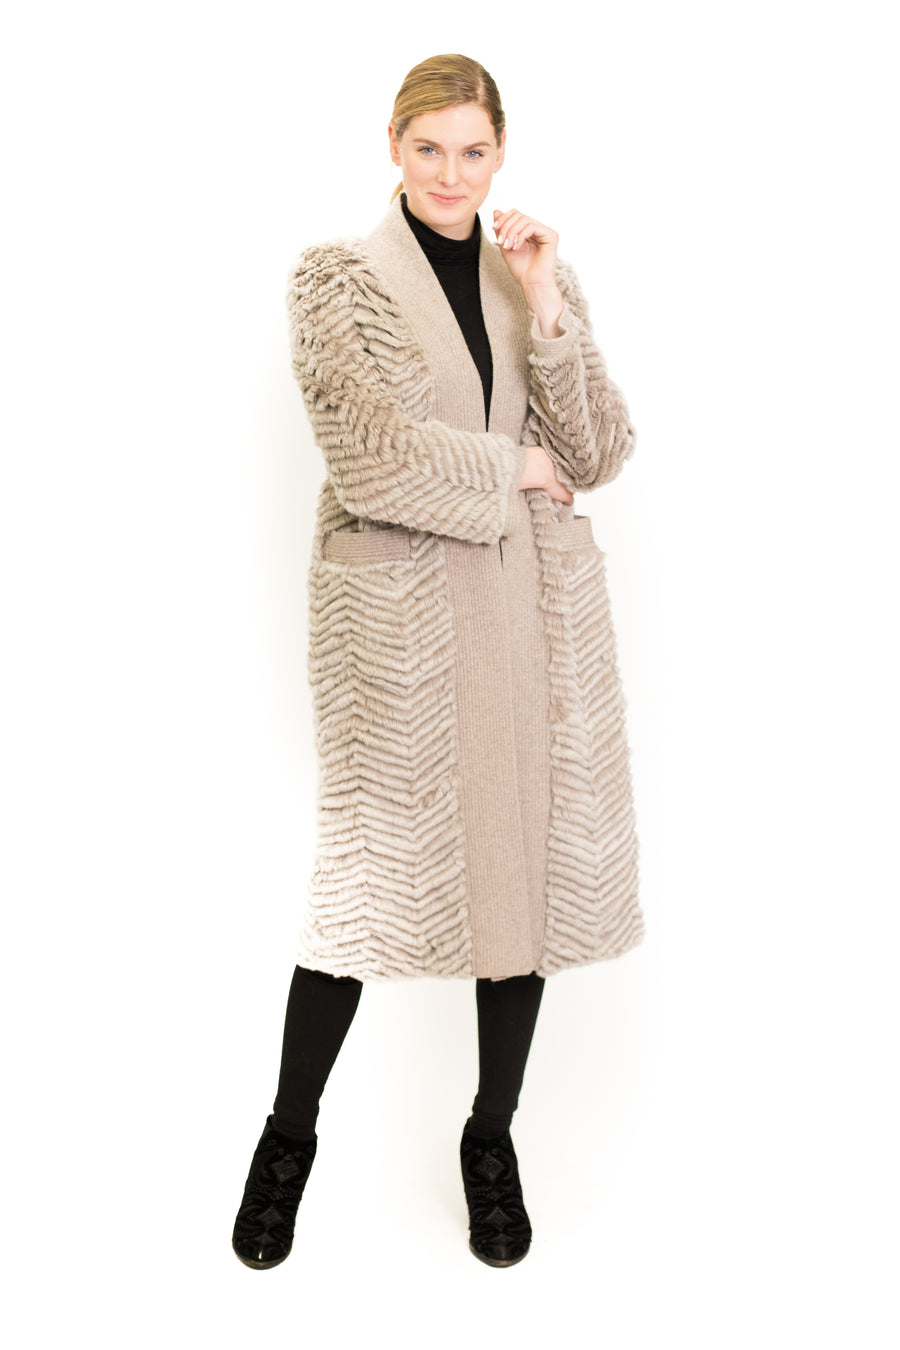 Rex Rabbit Long Cardigan